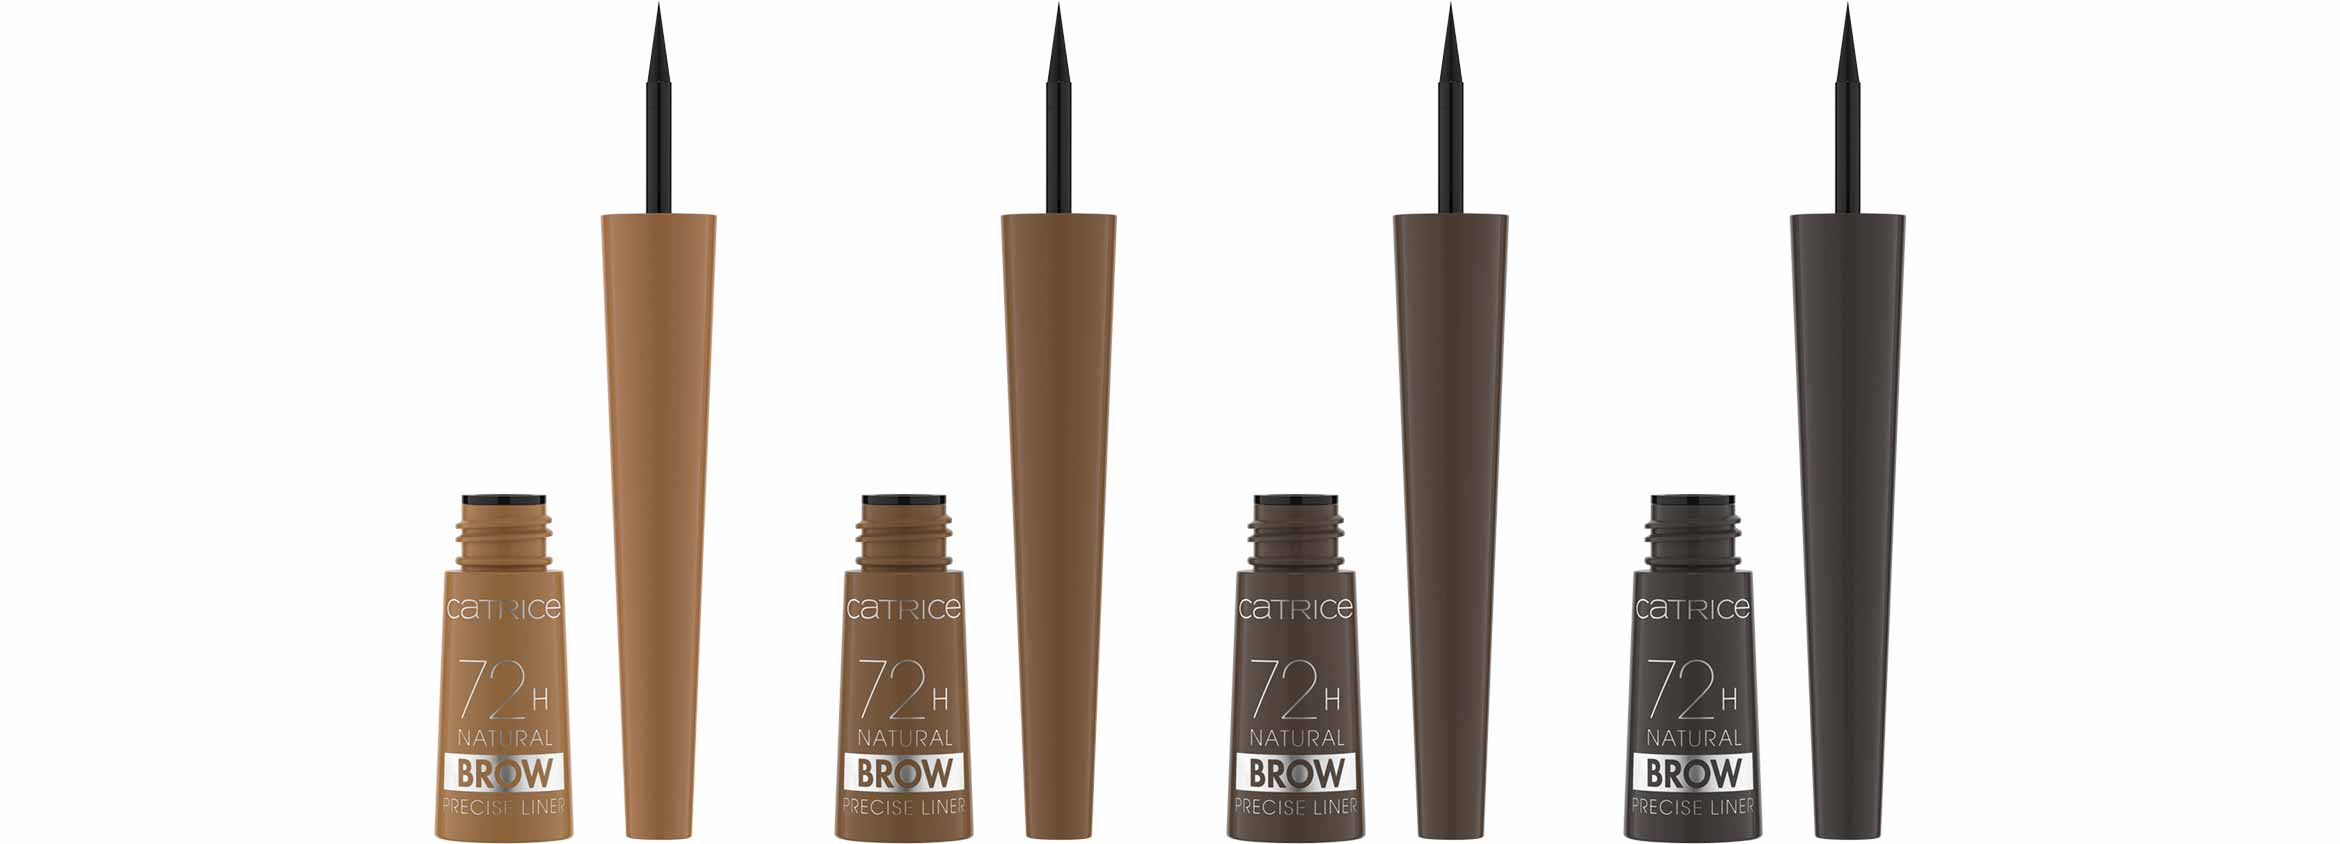 catrice 72H natural brow precise liner